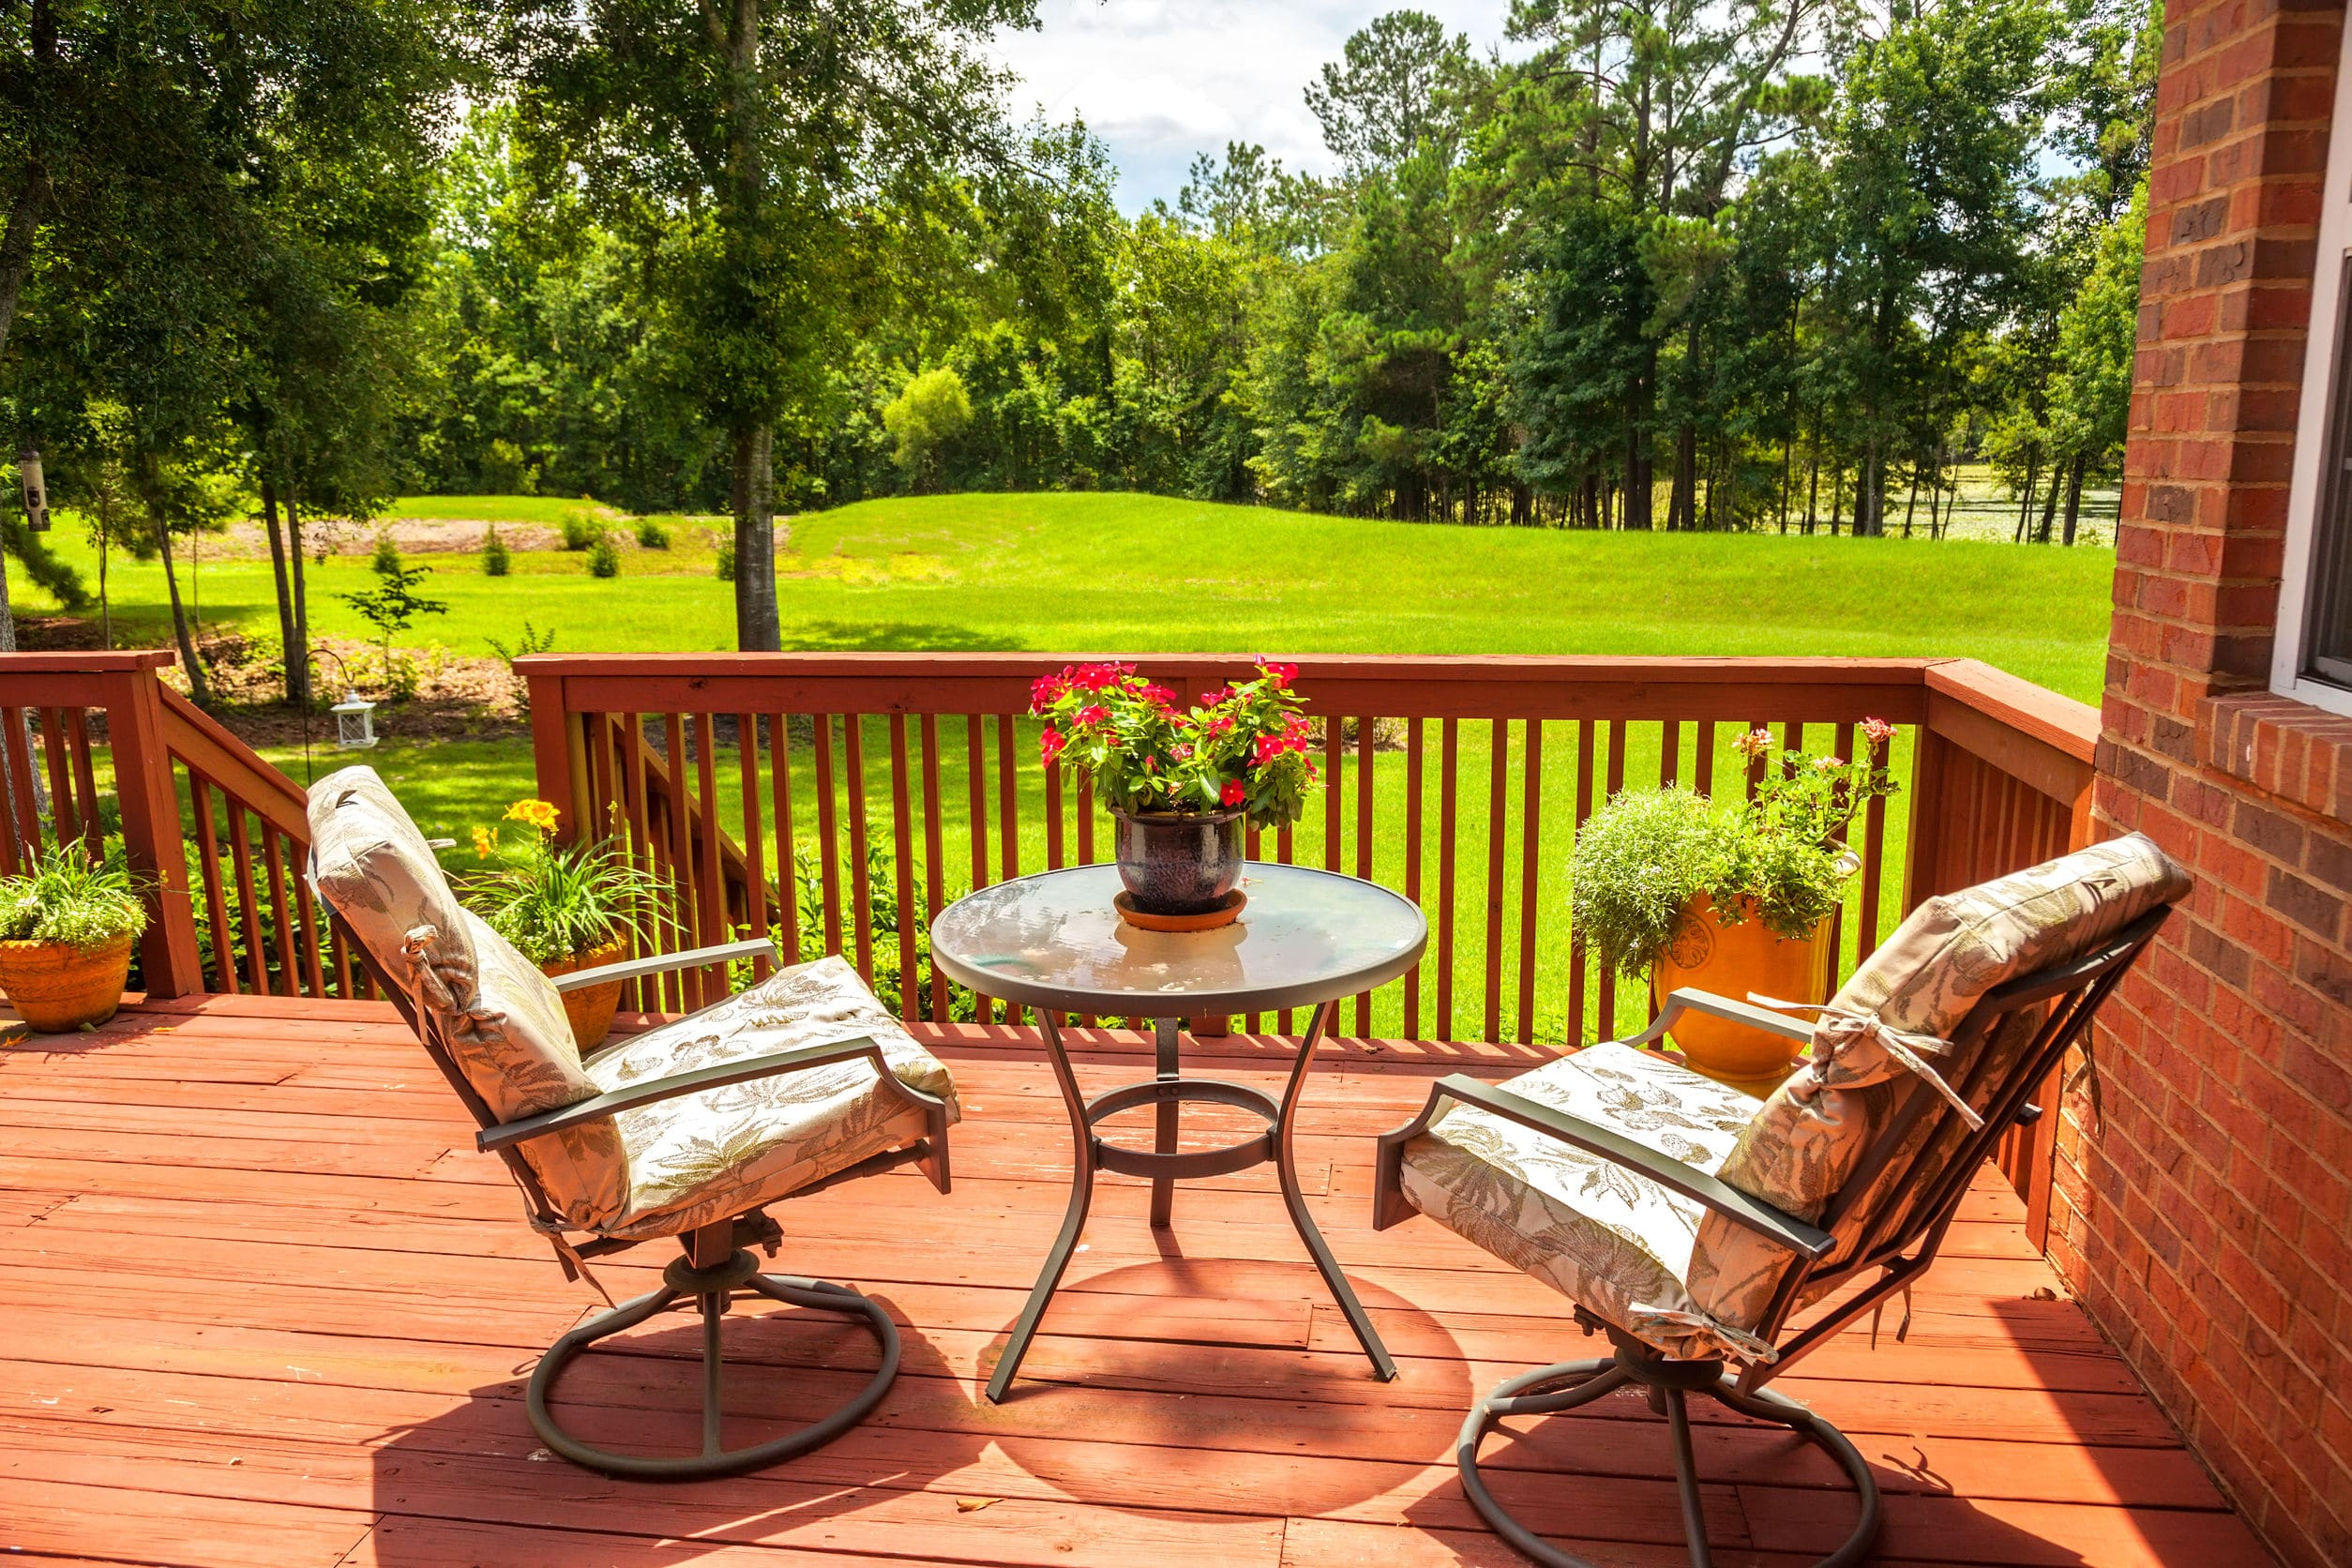 25253317 - backyard deck overlooking lake outside residential structure